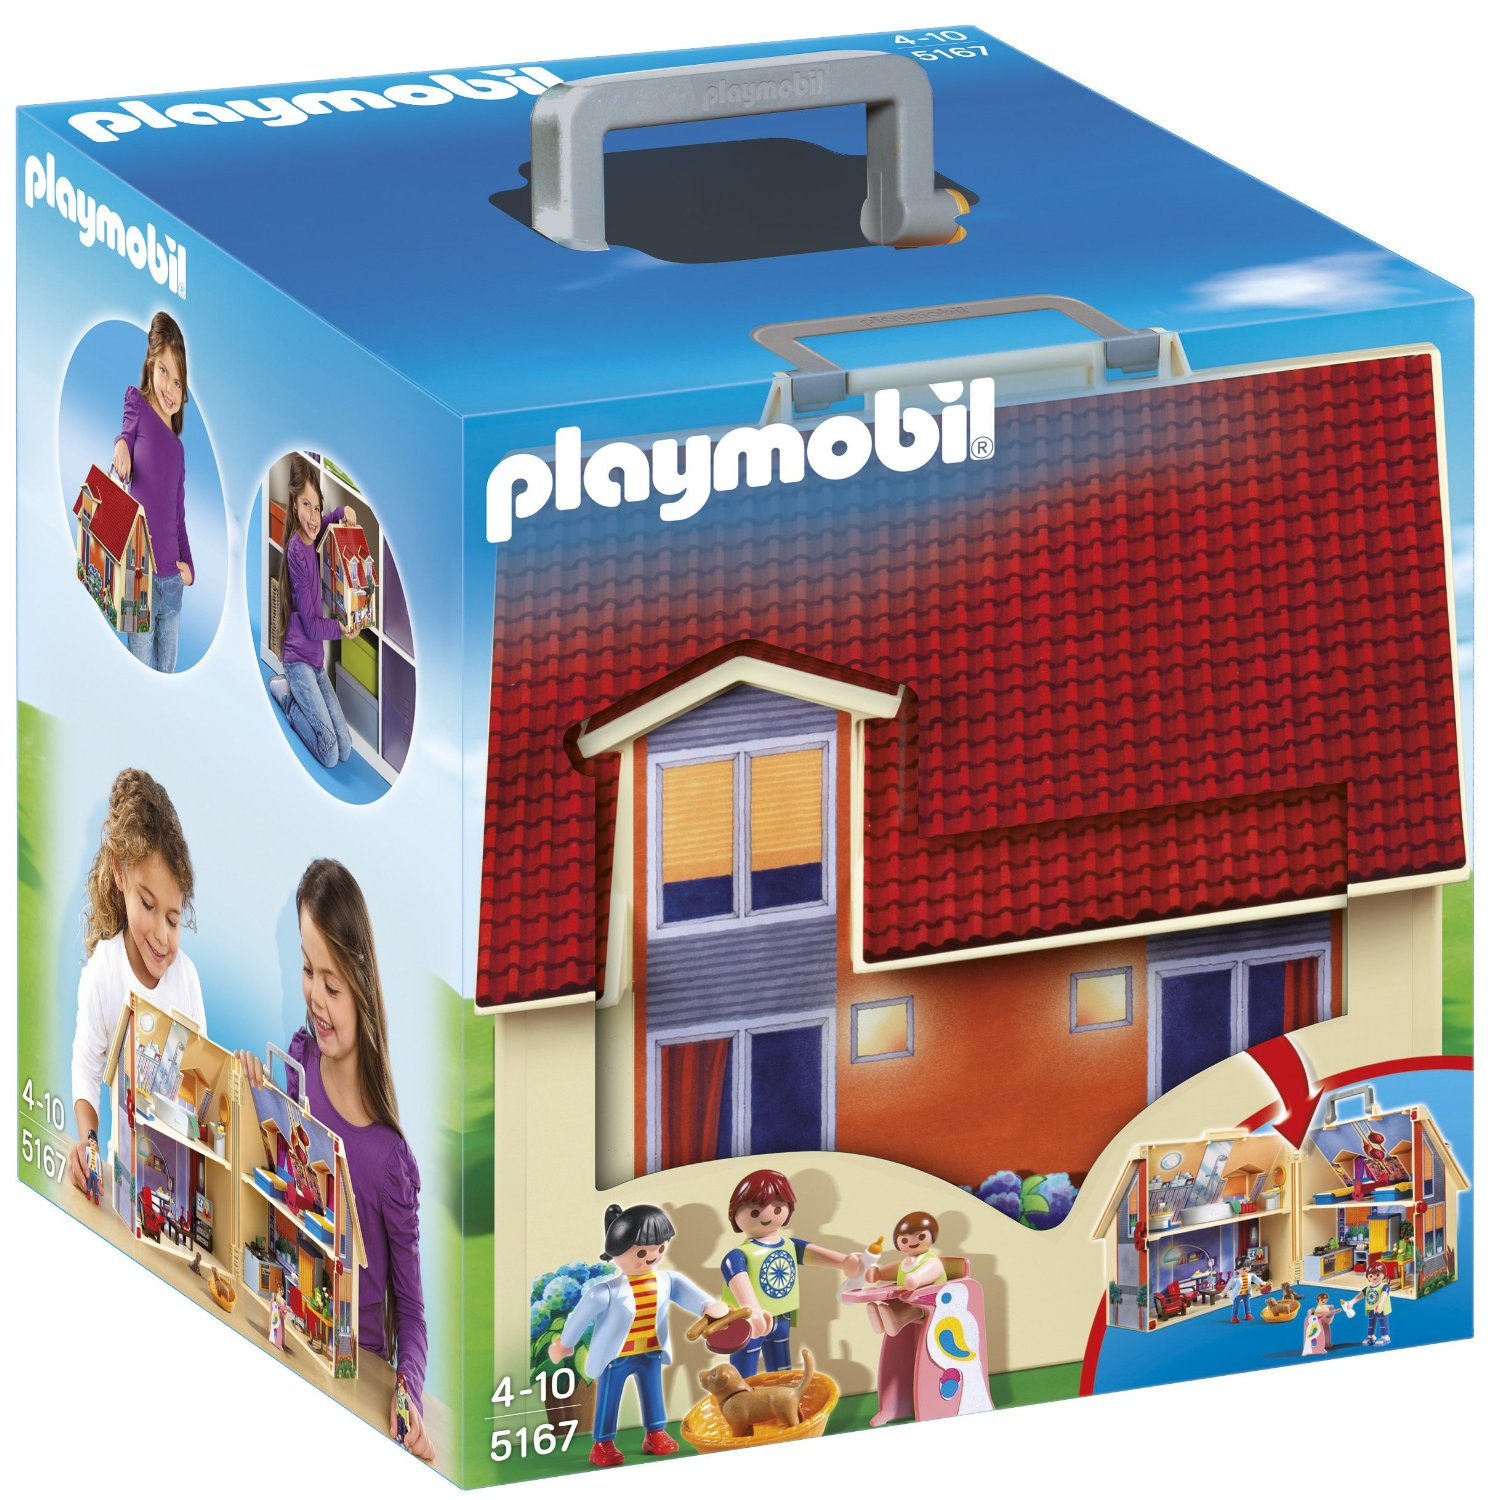 Jeu de Construction Playmobil - Maison Transportable, Jeu de Construction pas cher Amazon